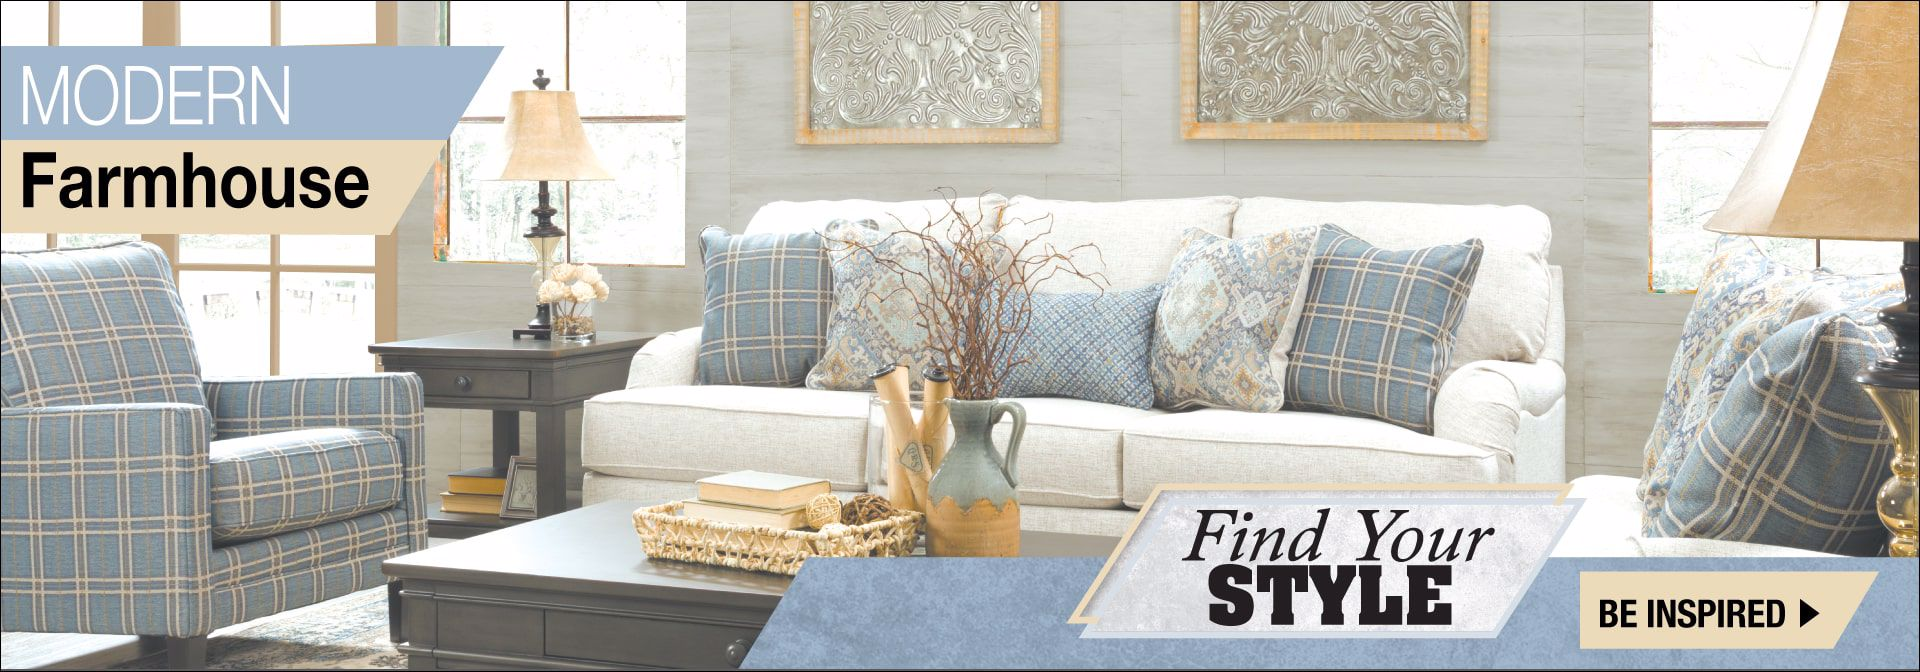 AFW's Find Your Style Event! - Farmhouse